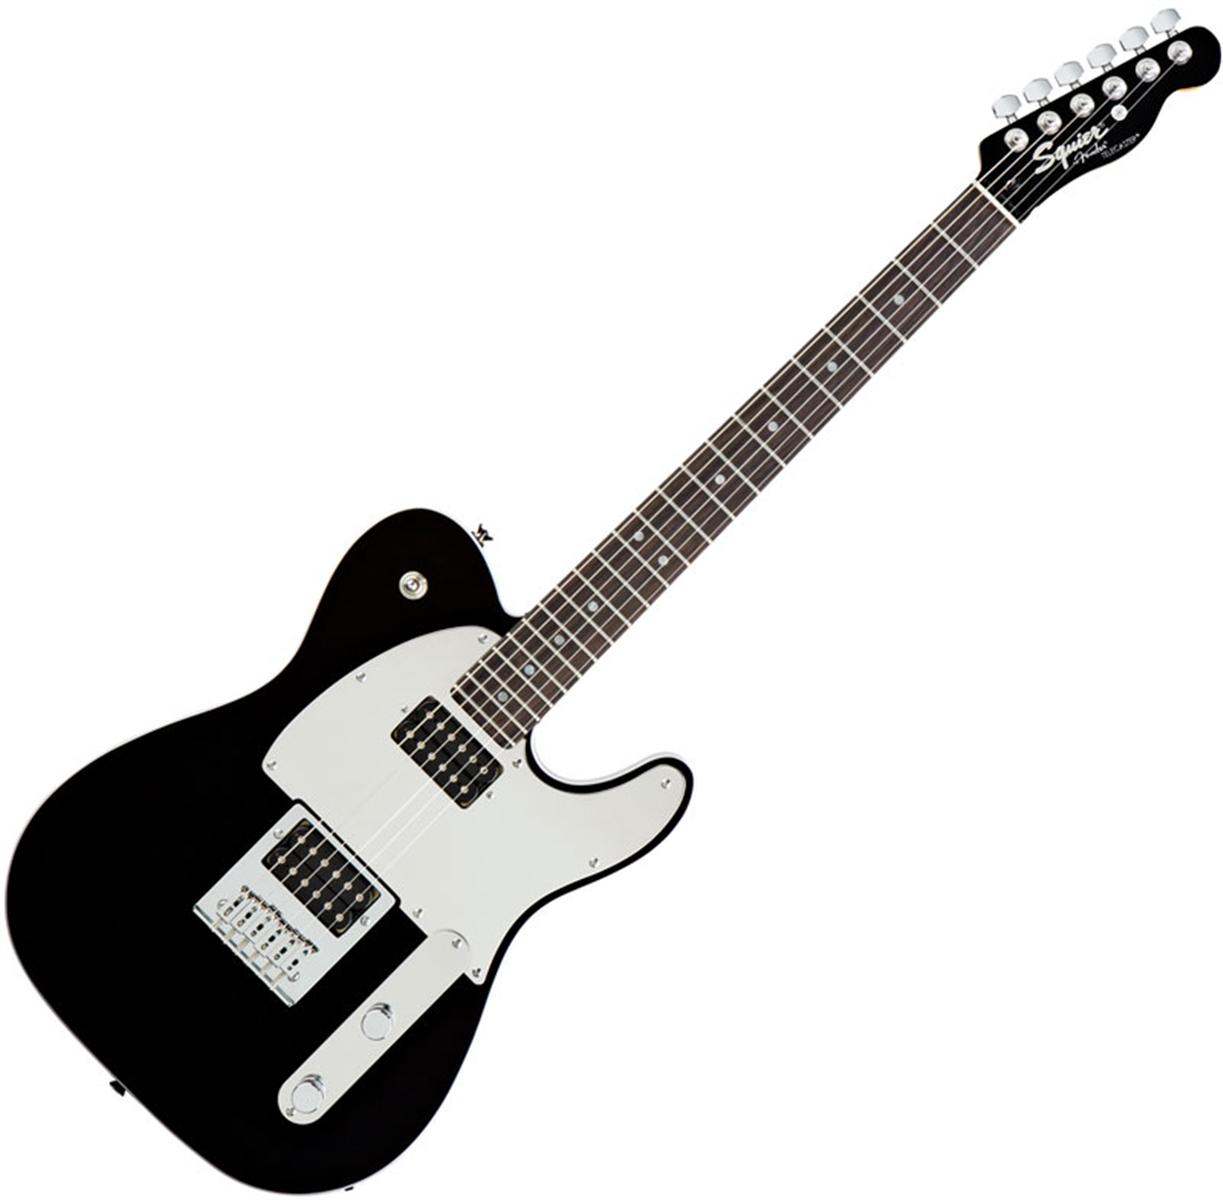 Electric Guitar Clipart Black And White